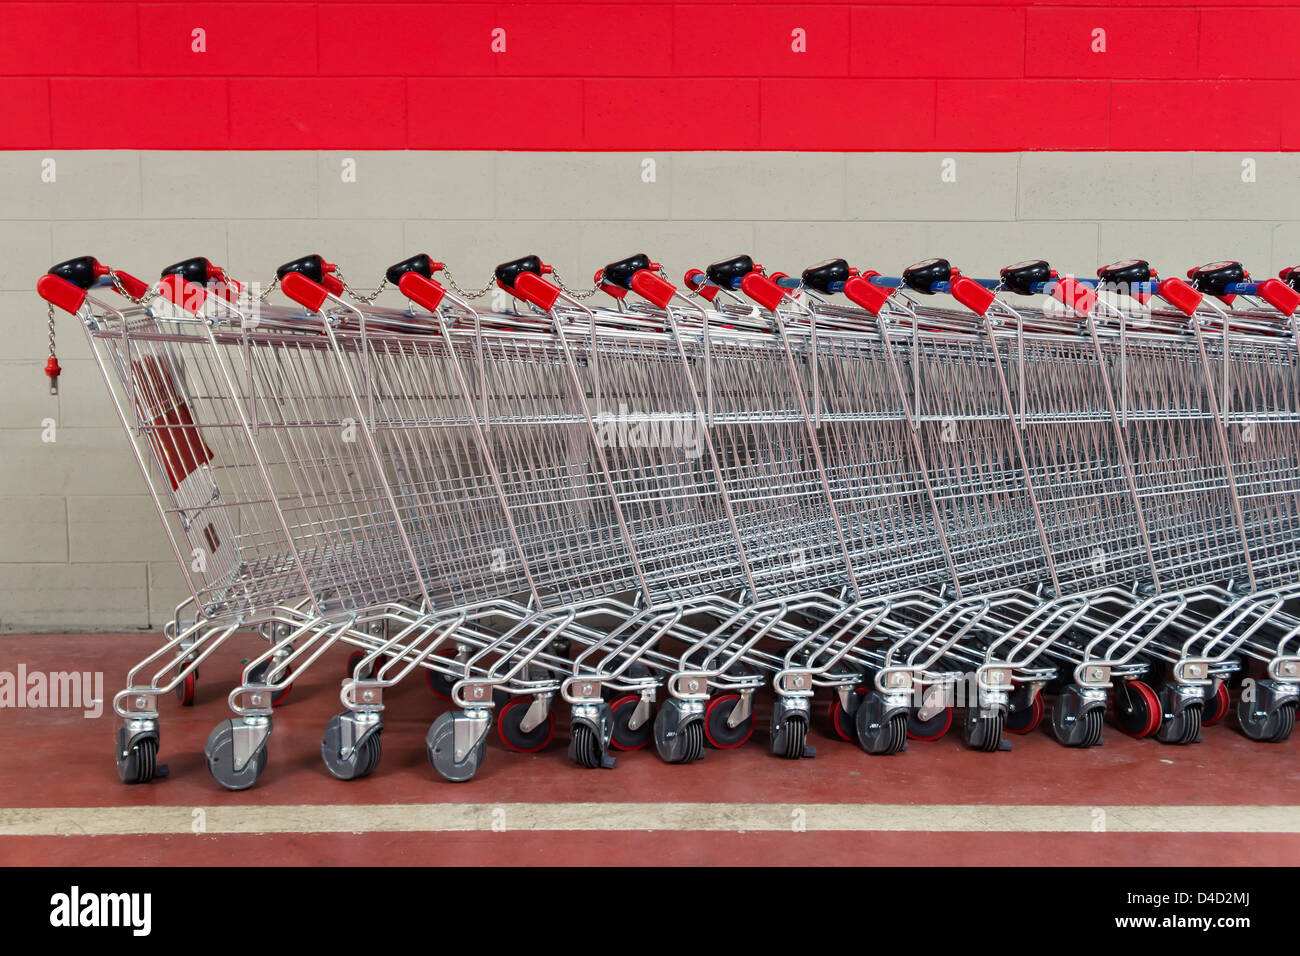 row of shopping trolleys or carts in supermarket - Stock Image